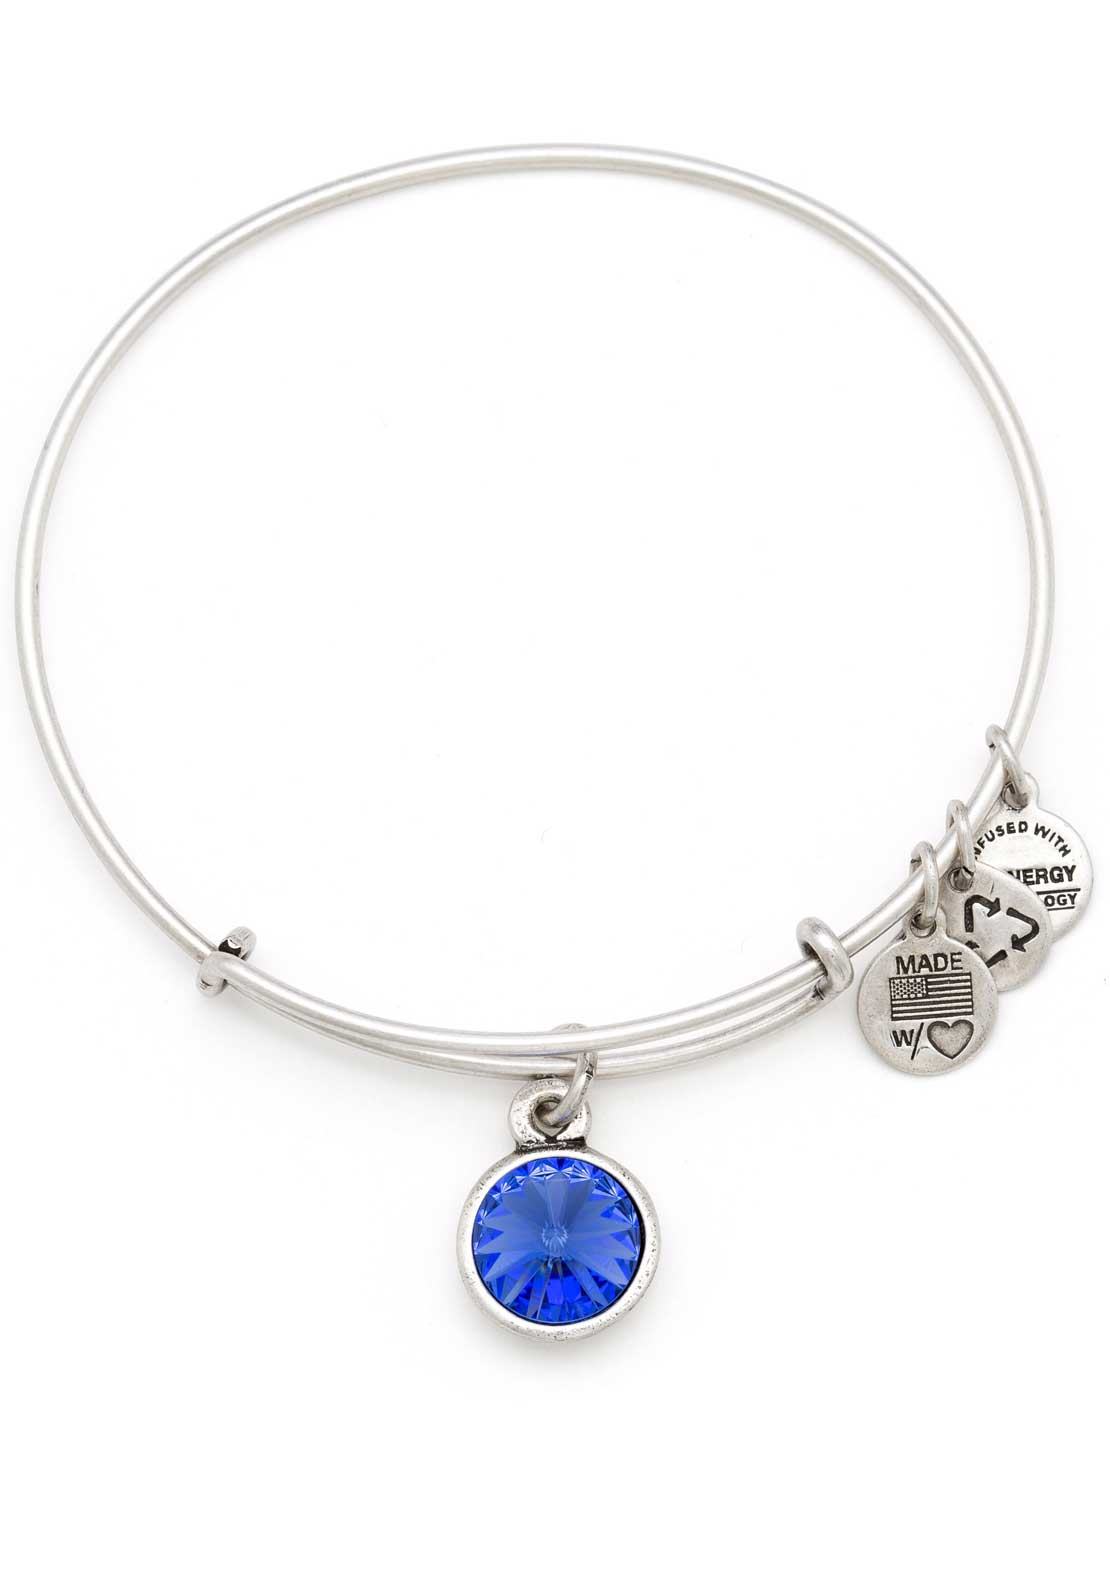 Alex and Ani (+) Energy September Birthstone Sapphire Bracelet, Silver